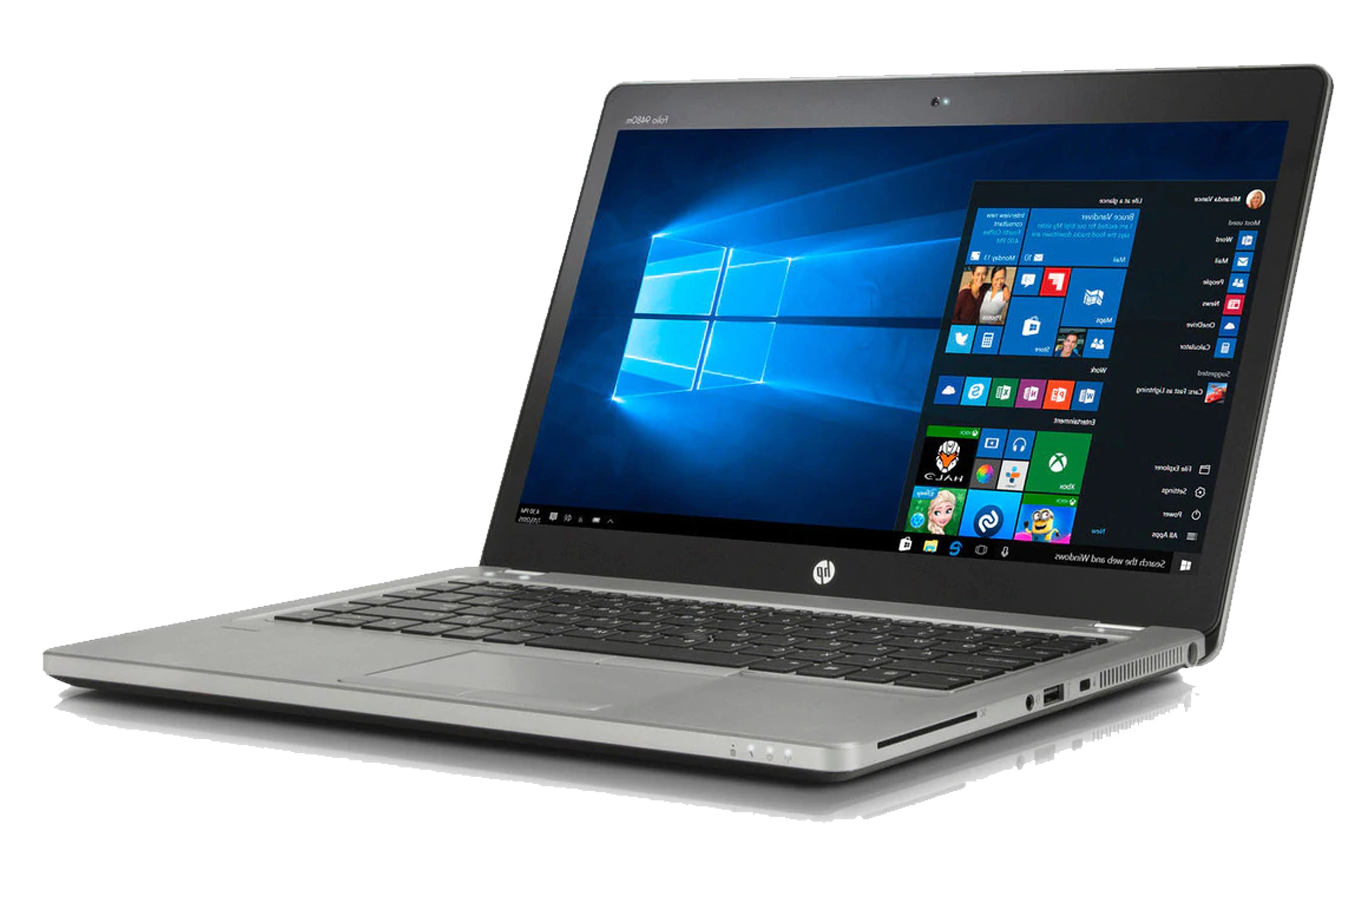 HP FOLIO 9480M DRIVER FOR WINDOWS 7